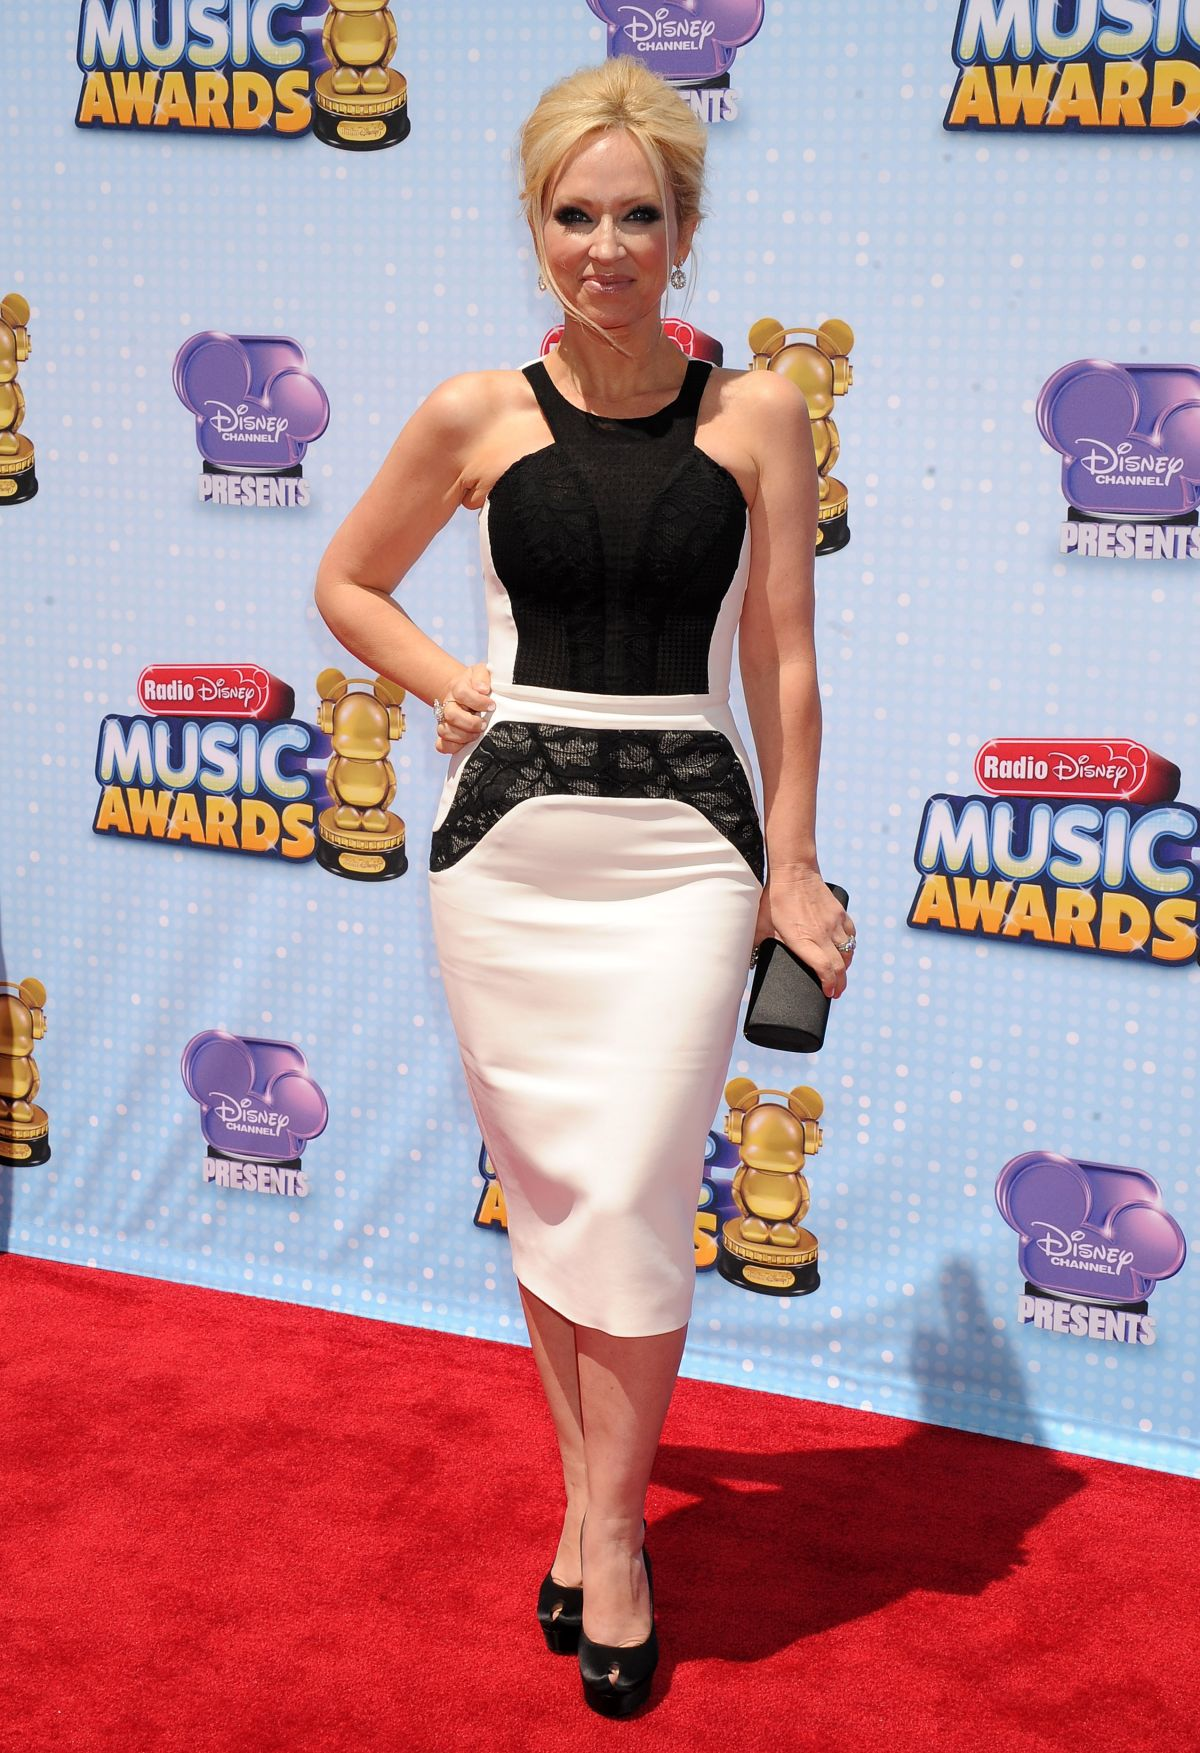 LEIGH-ALLYN BAKER at Radio Disney Music Awards 2014 in Los Angeles